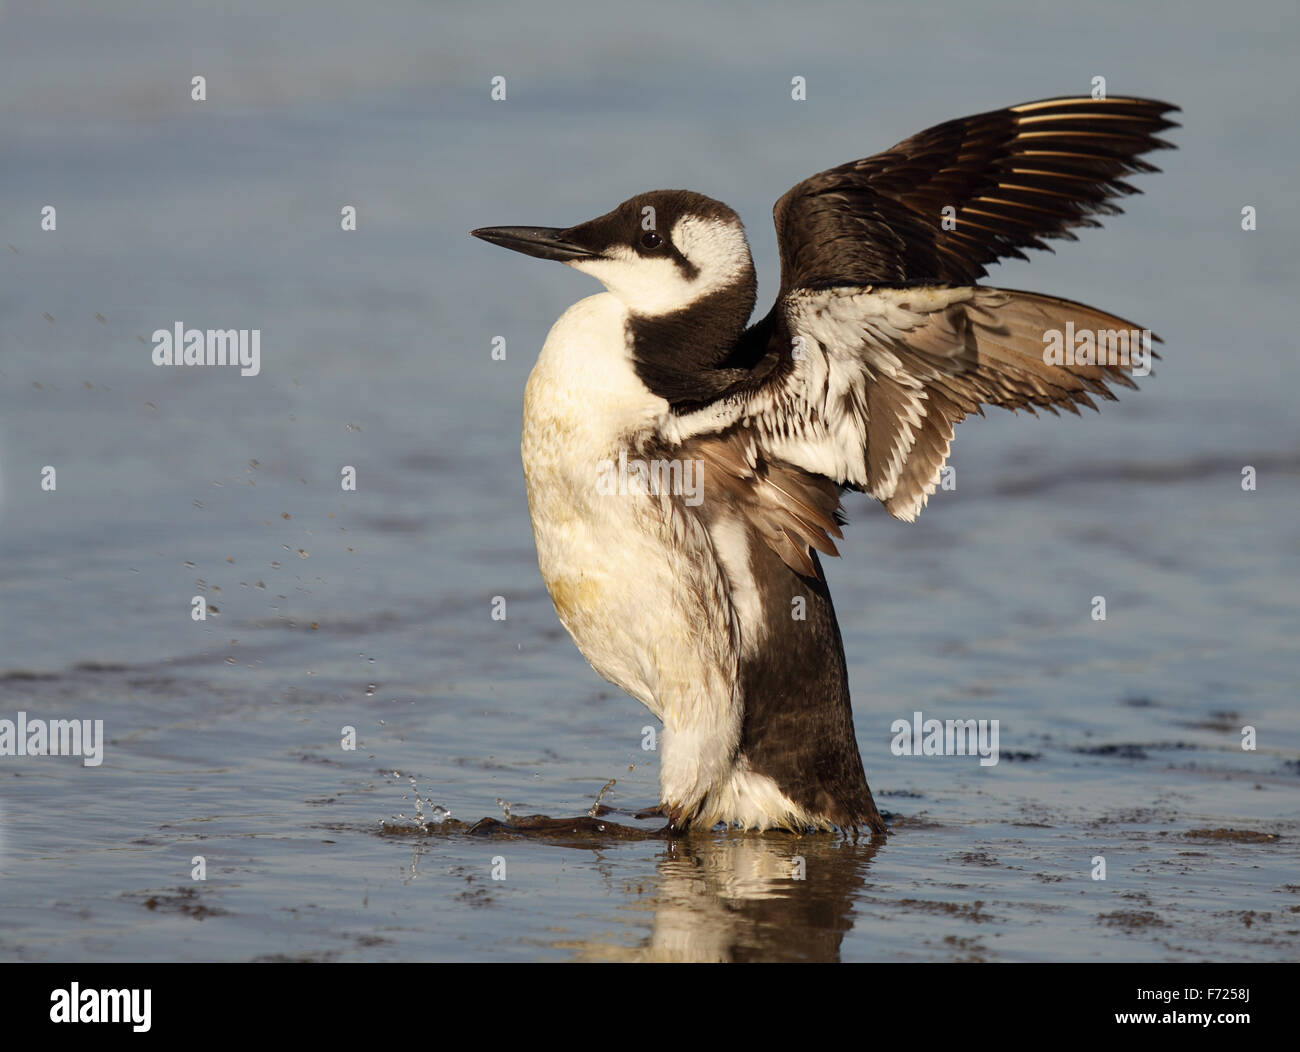 A Common Murre throwing out its wings. - Stock Image